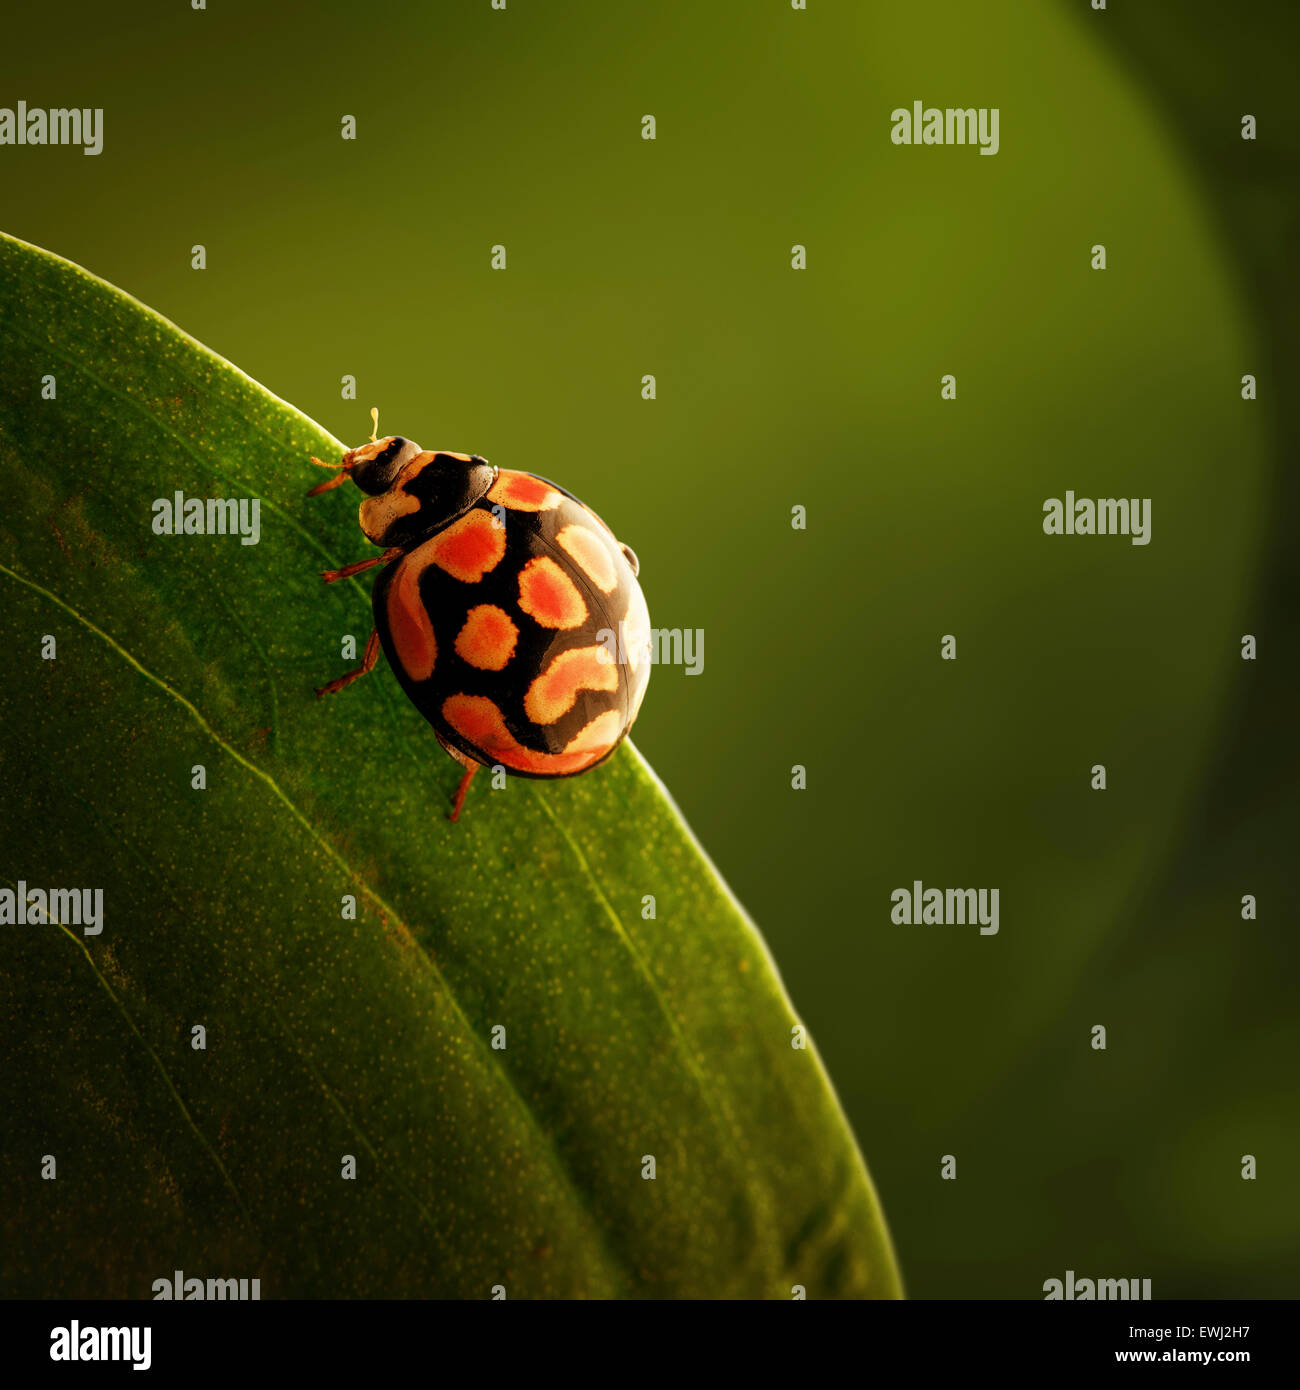 Ladybug (ladybird) crawling on the edge of a green leaf (South Africa - Mpumalanga) - Stock Image